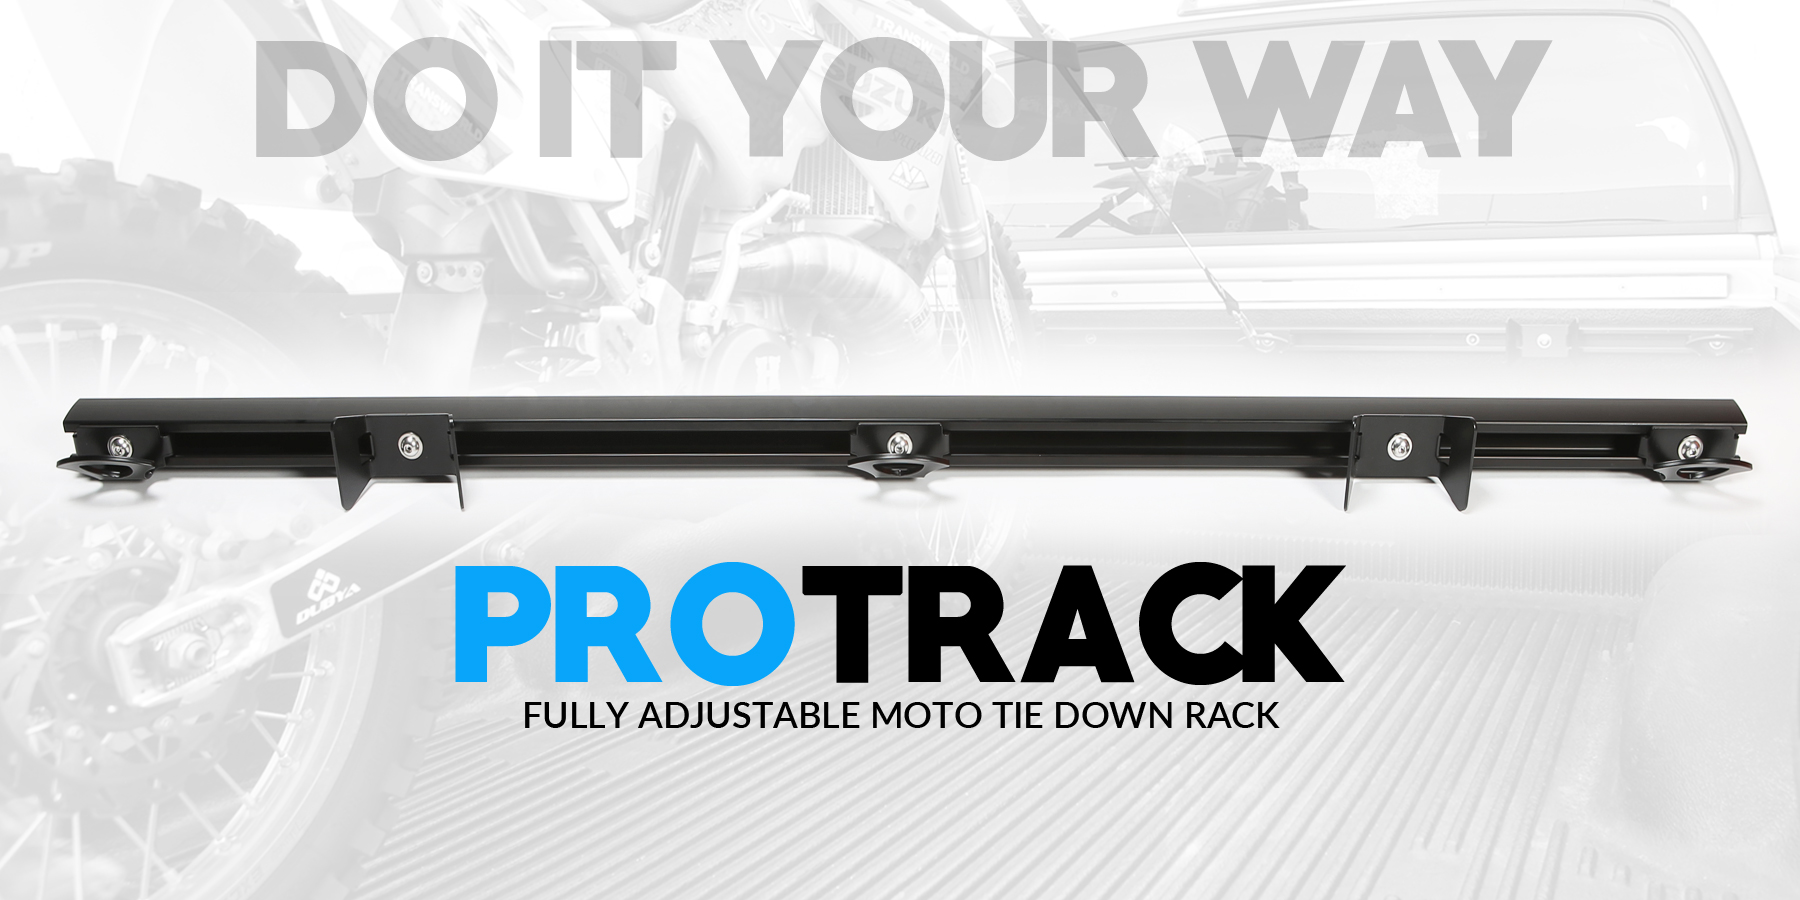 The ProTrack Motorcycle Transport Kit gives you the freedom to haul your stuff your way.